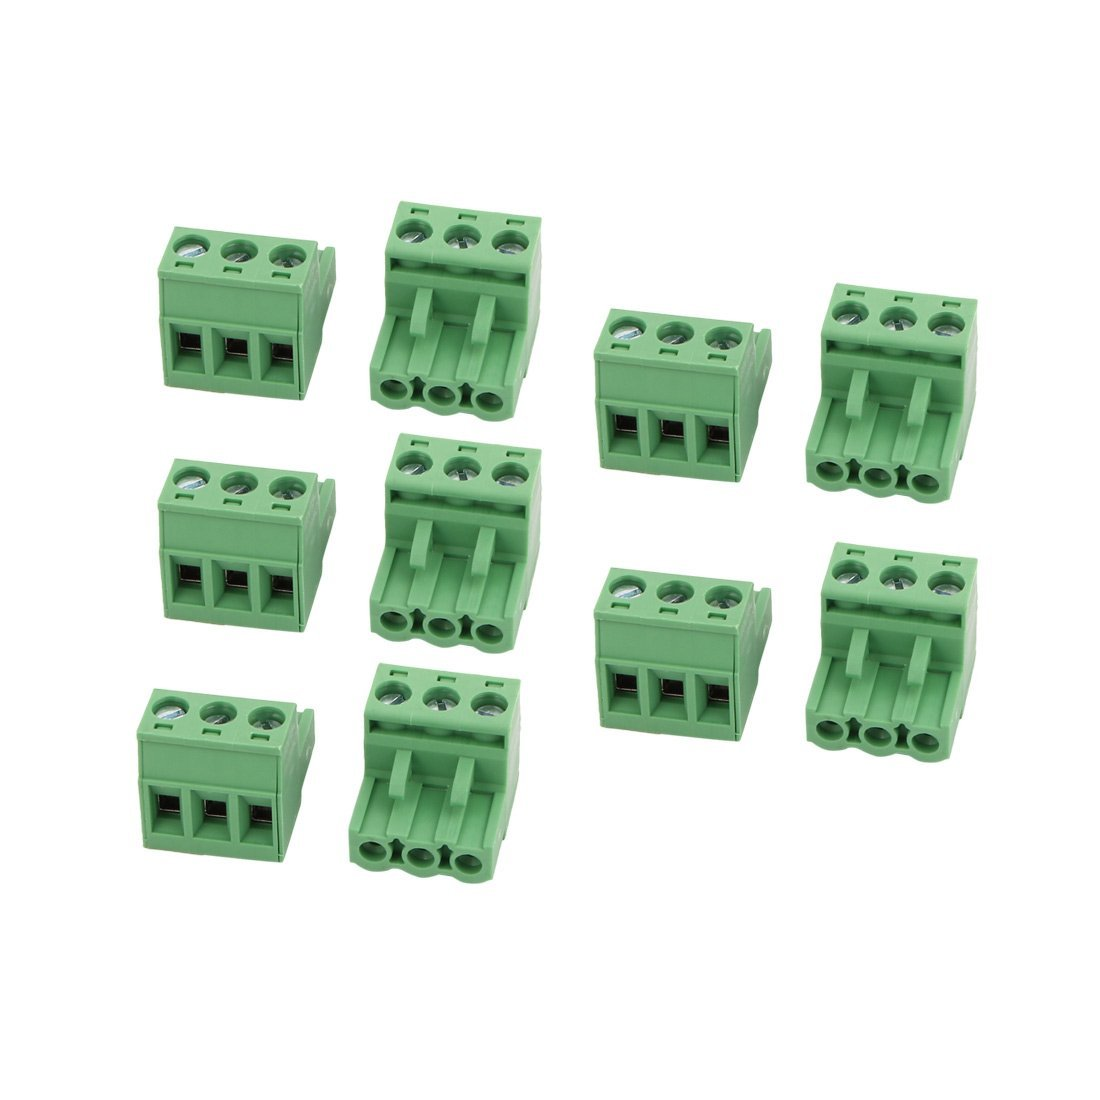 uxcell 10Pcs AC 300V 15A 5.08mm Pitch 3P Terminal Block Wire Connection for PCB Mounting